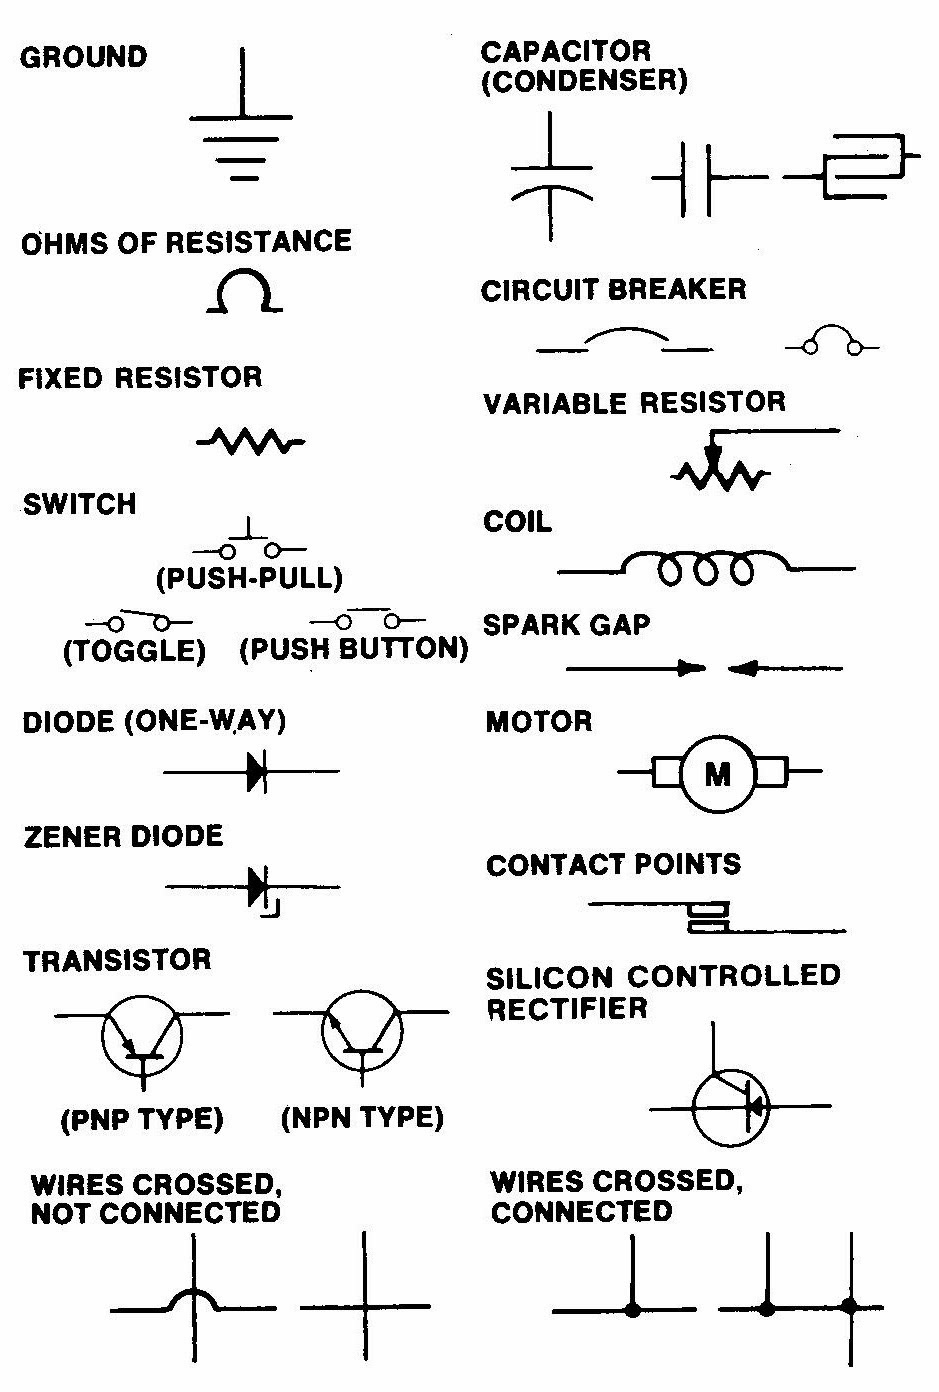 Common+Car+Electrical+Diagram+Symbols fundamentals to understanding automobile electrical and vacuum how to read automotive wiring diagrams symbols at alyssarenee.co